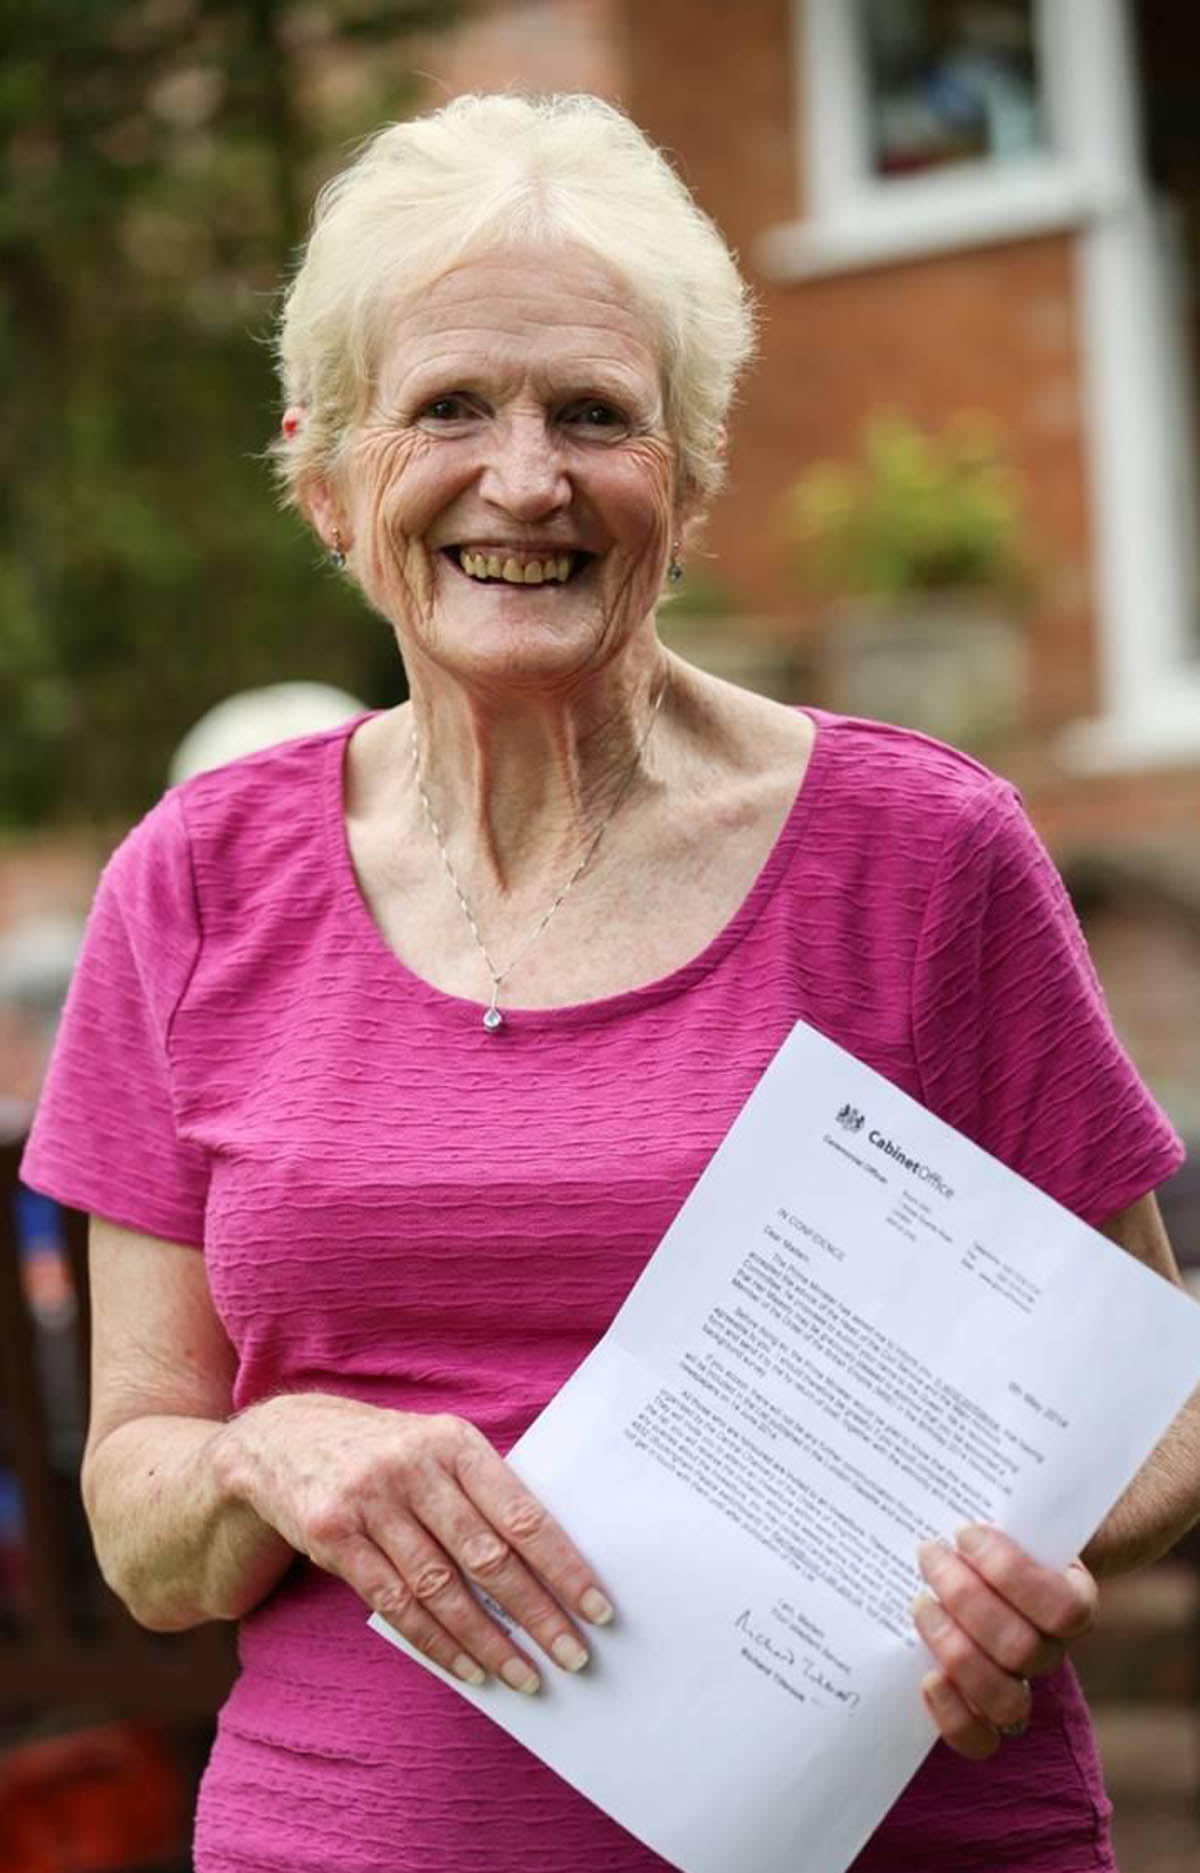 Grandmother Valerie awarded MBE in birthday list